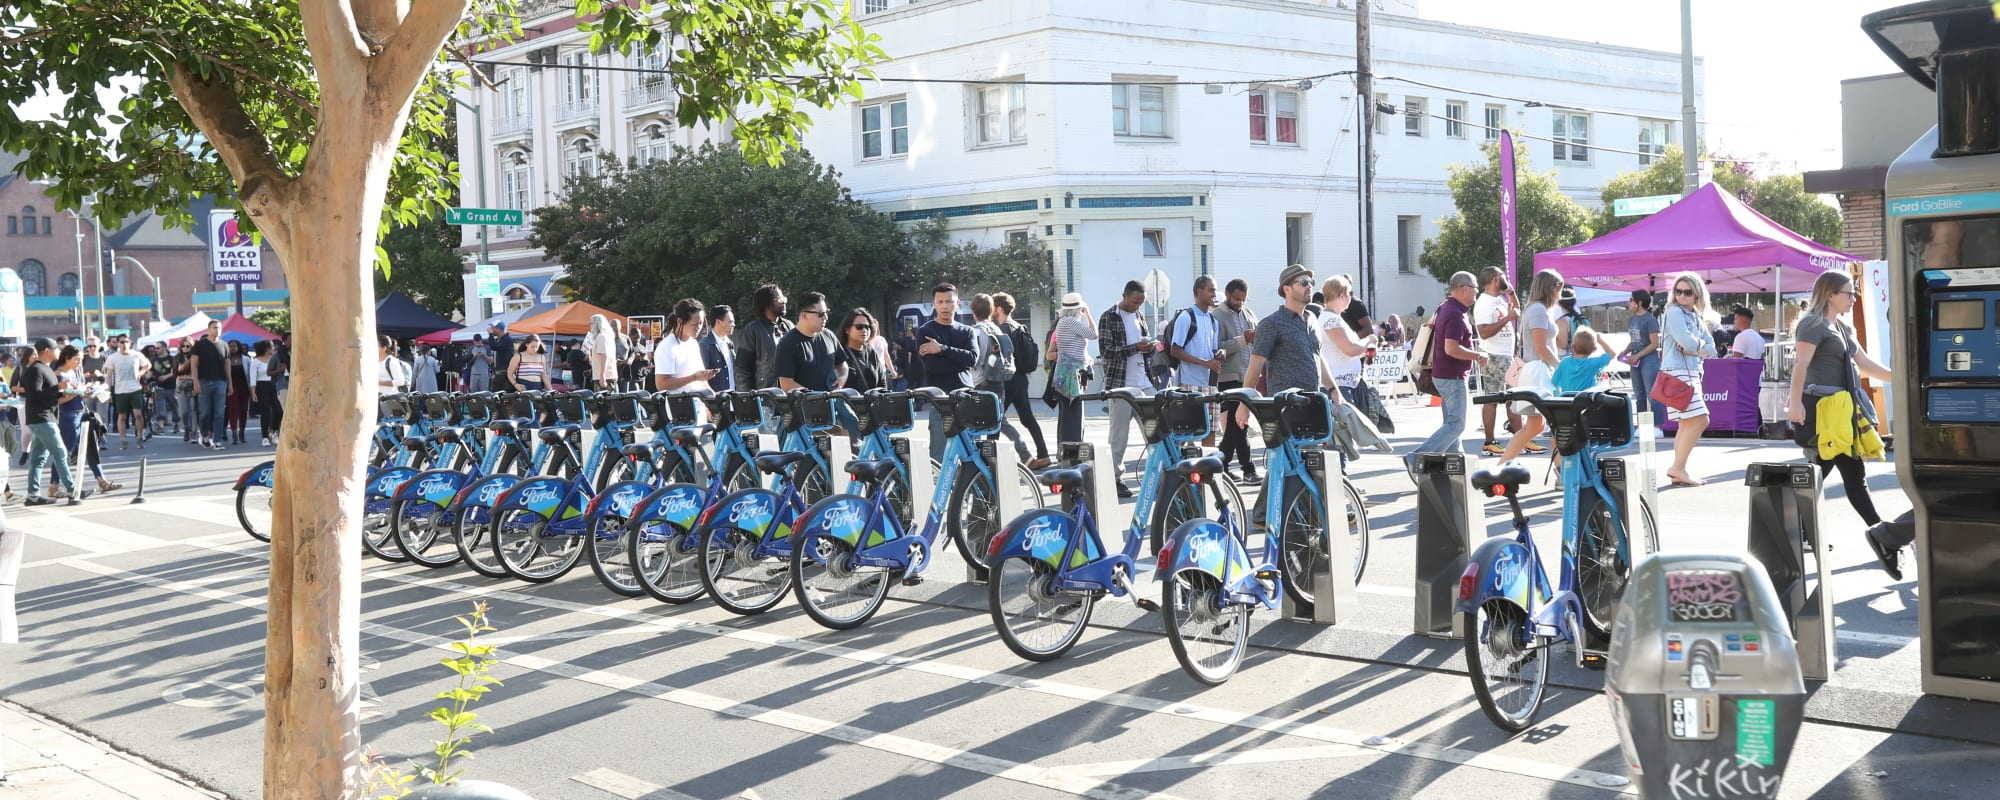 Line of rentable bikes near The Moran in Oakland, California